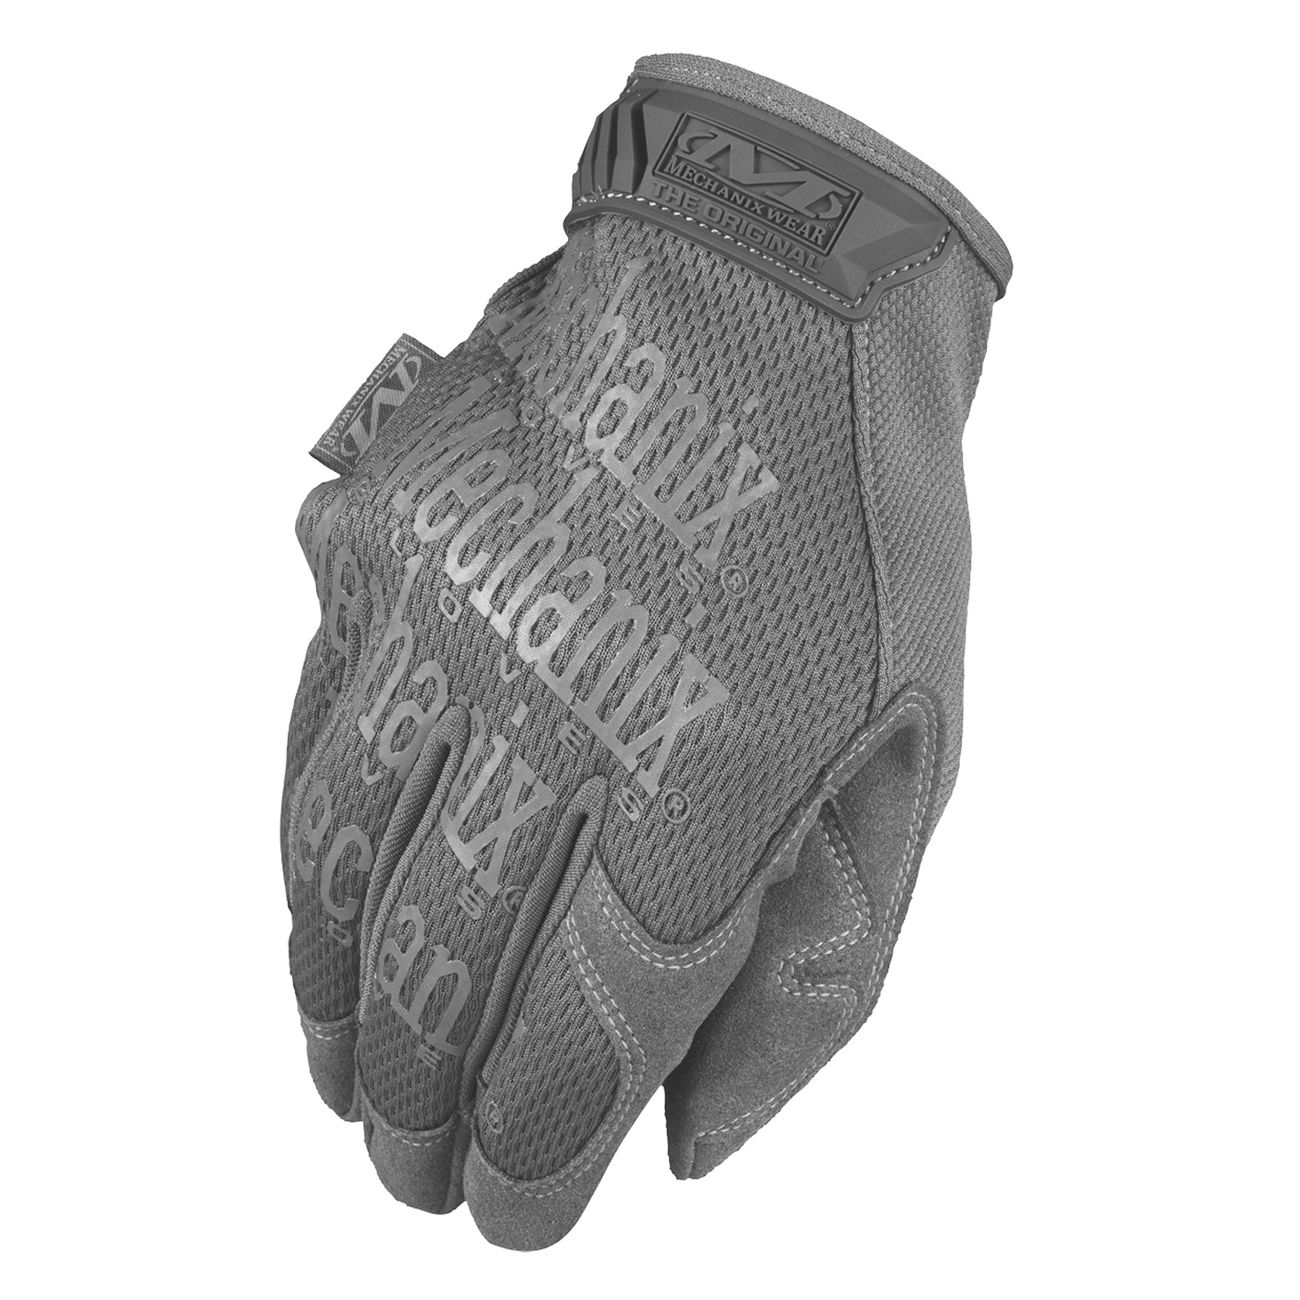 Mechanix Wear Original Glove Handschuhe grau 0